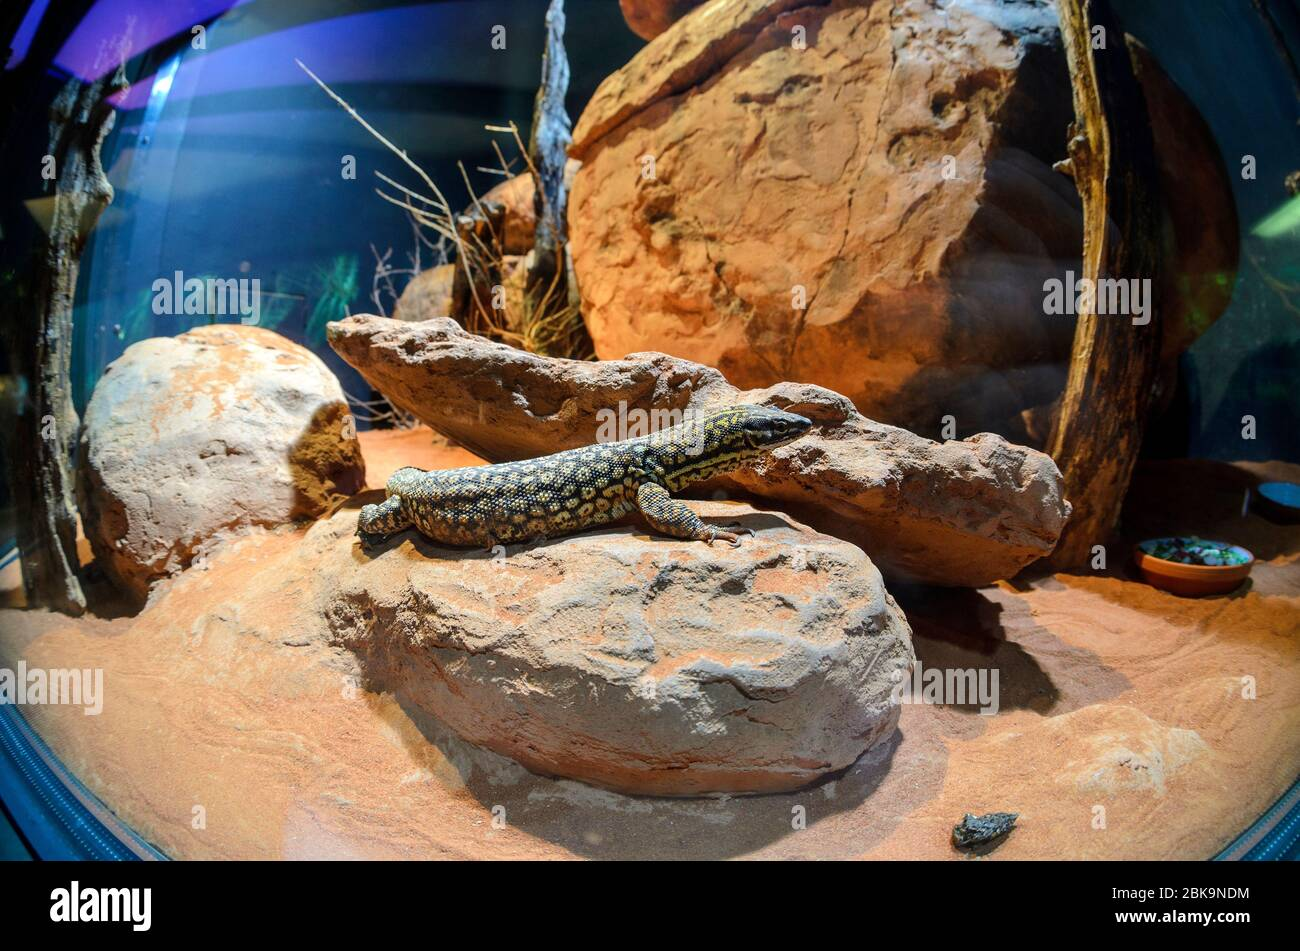 Skink In A Brightly Lit Desert Terrarium With Rocks Stock Photo Alamy